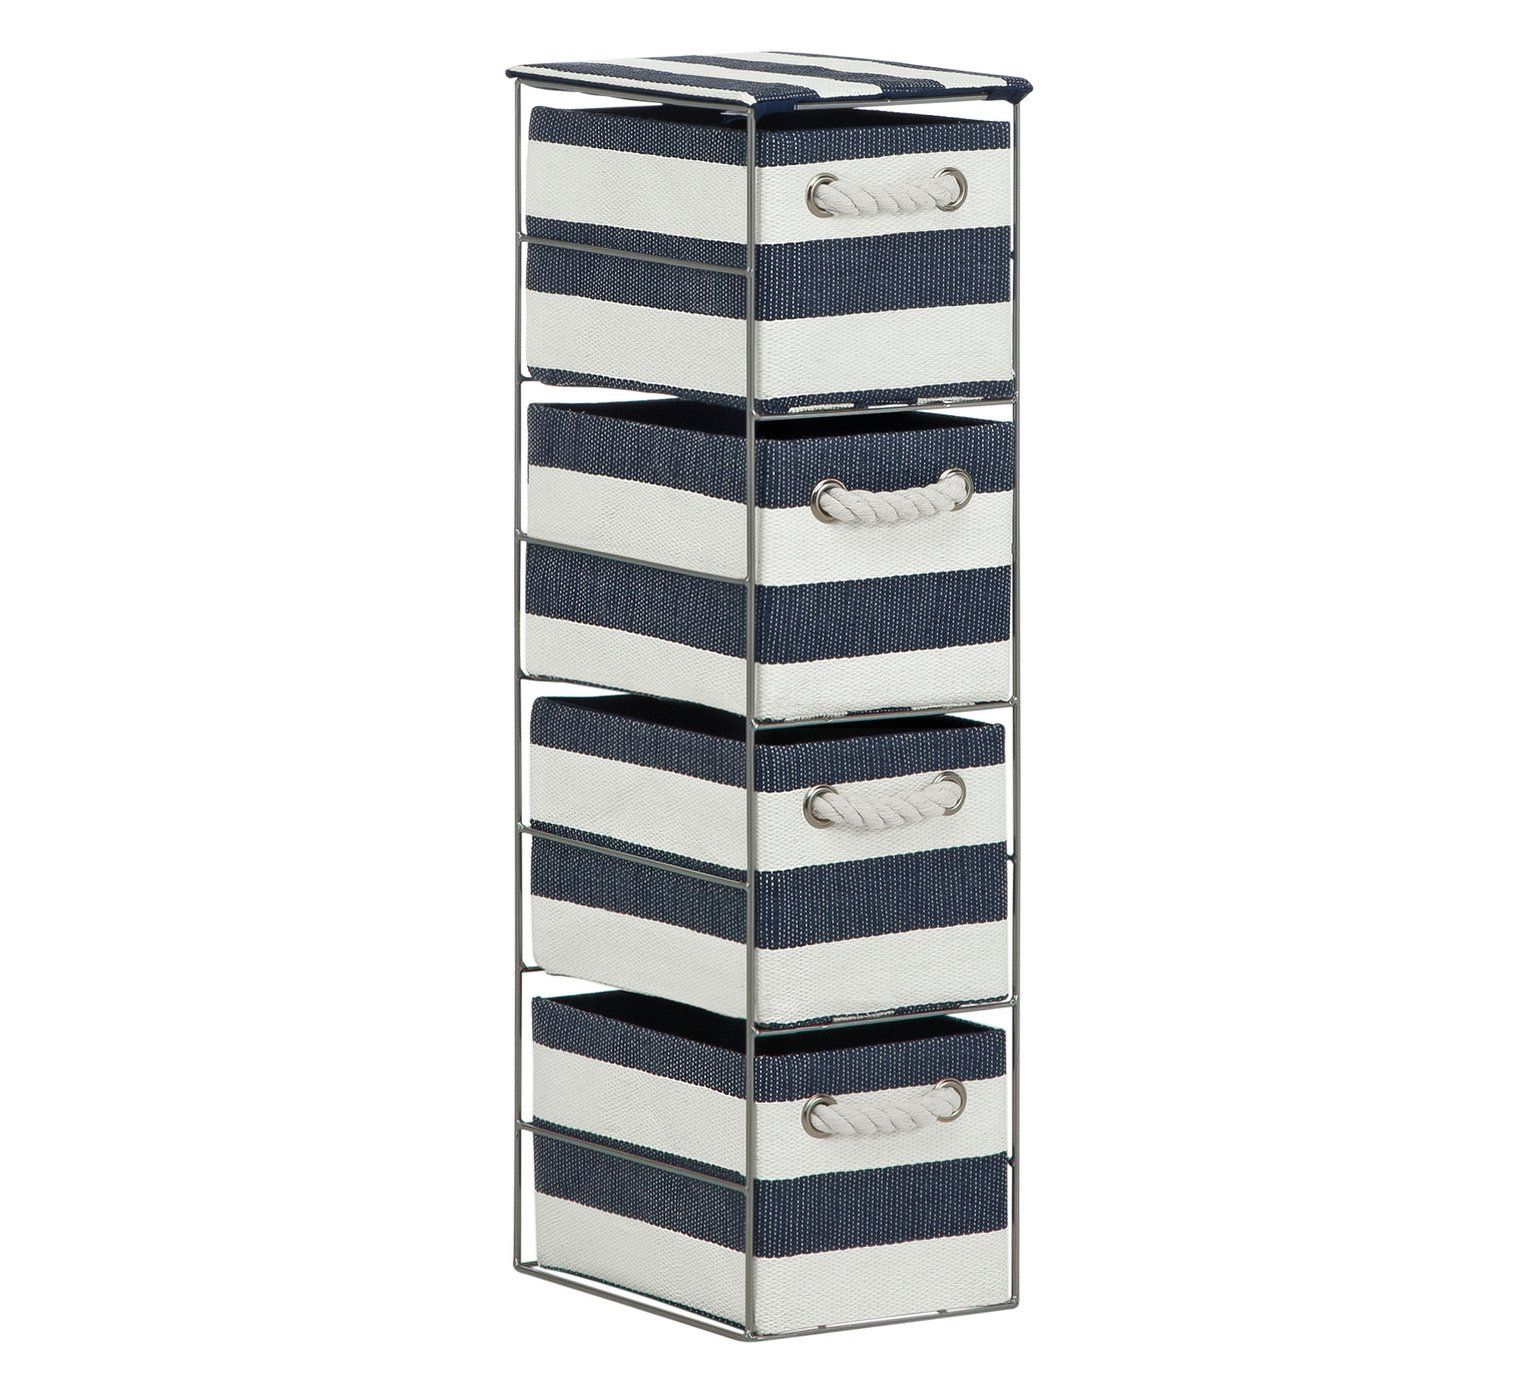 Buy Argos Home Tall 11 Drawer Storage Tower - Blue and White